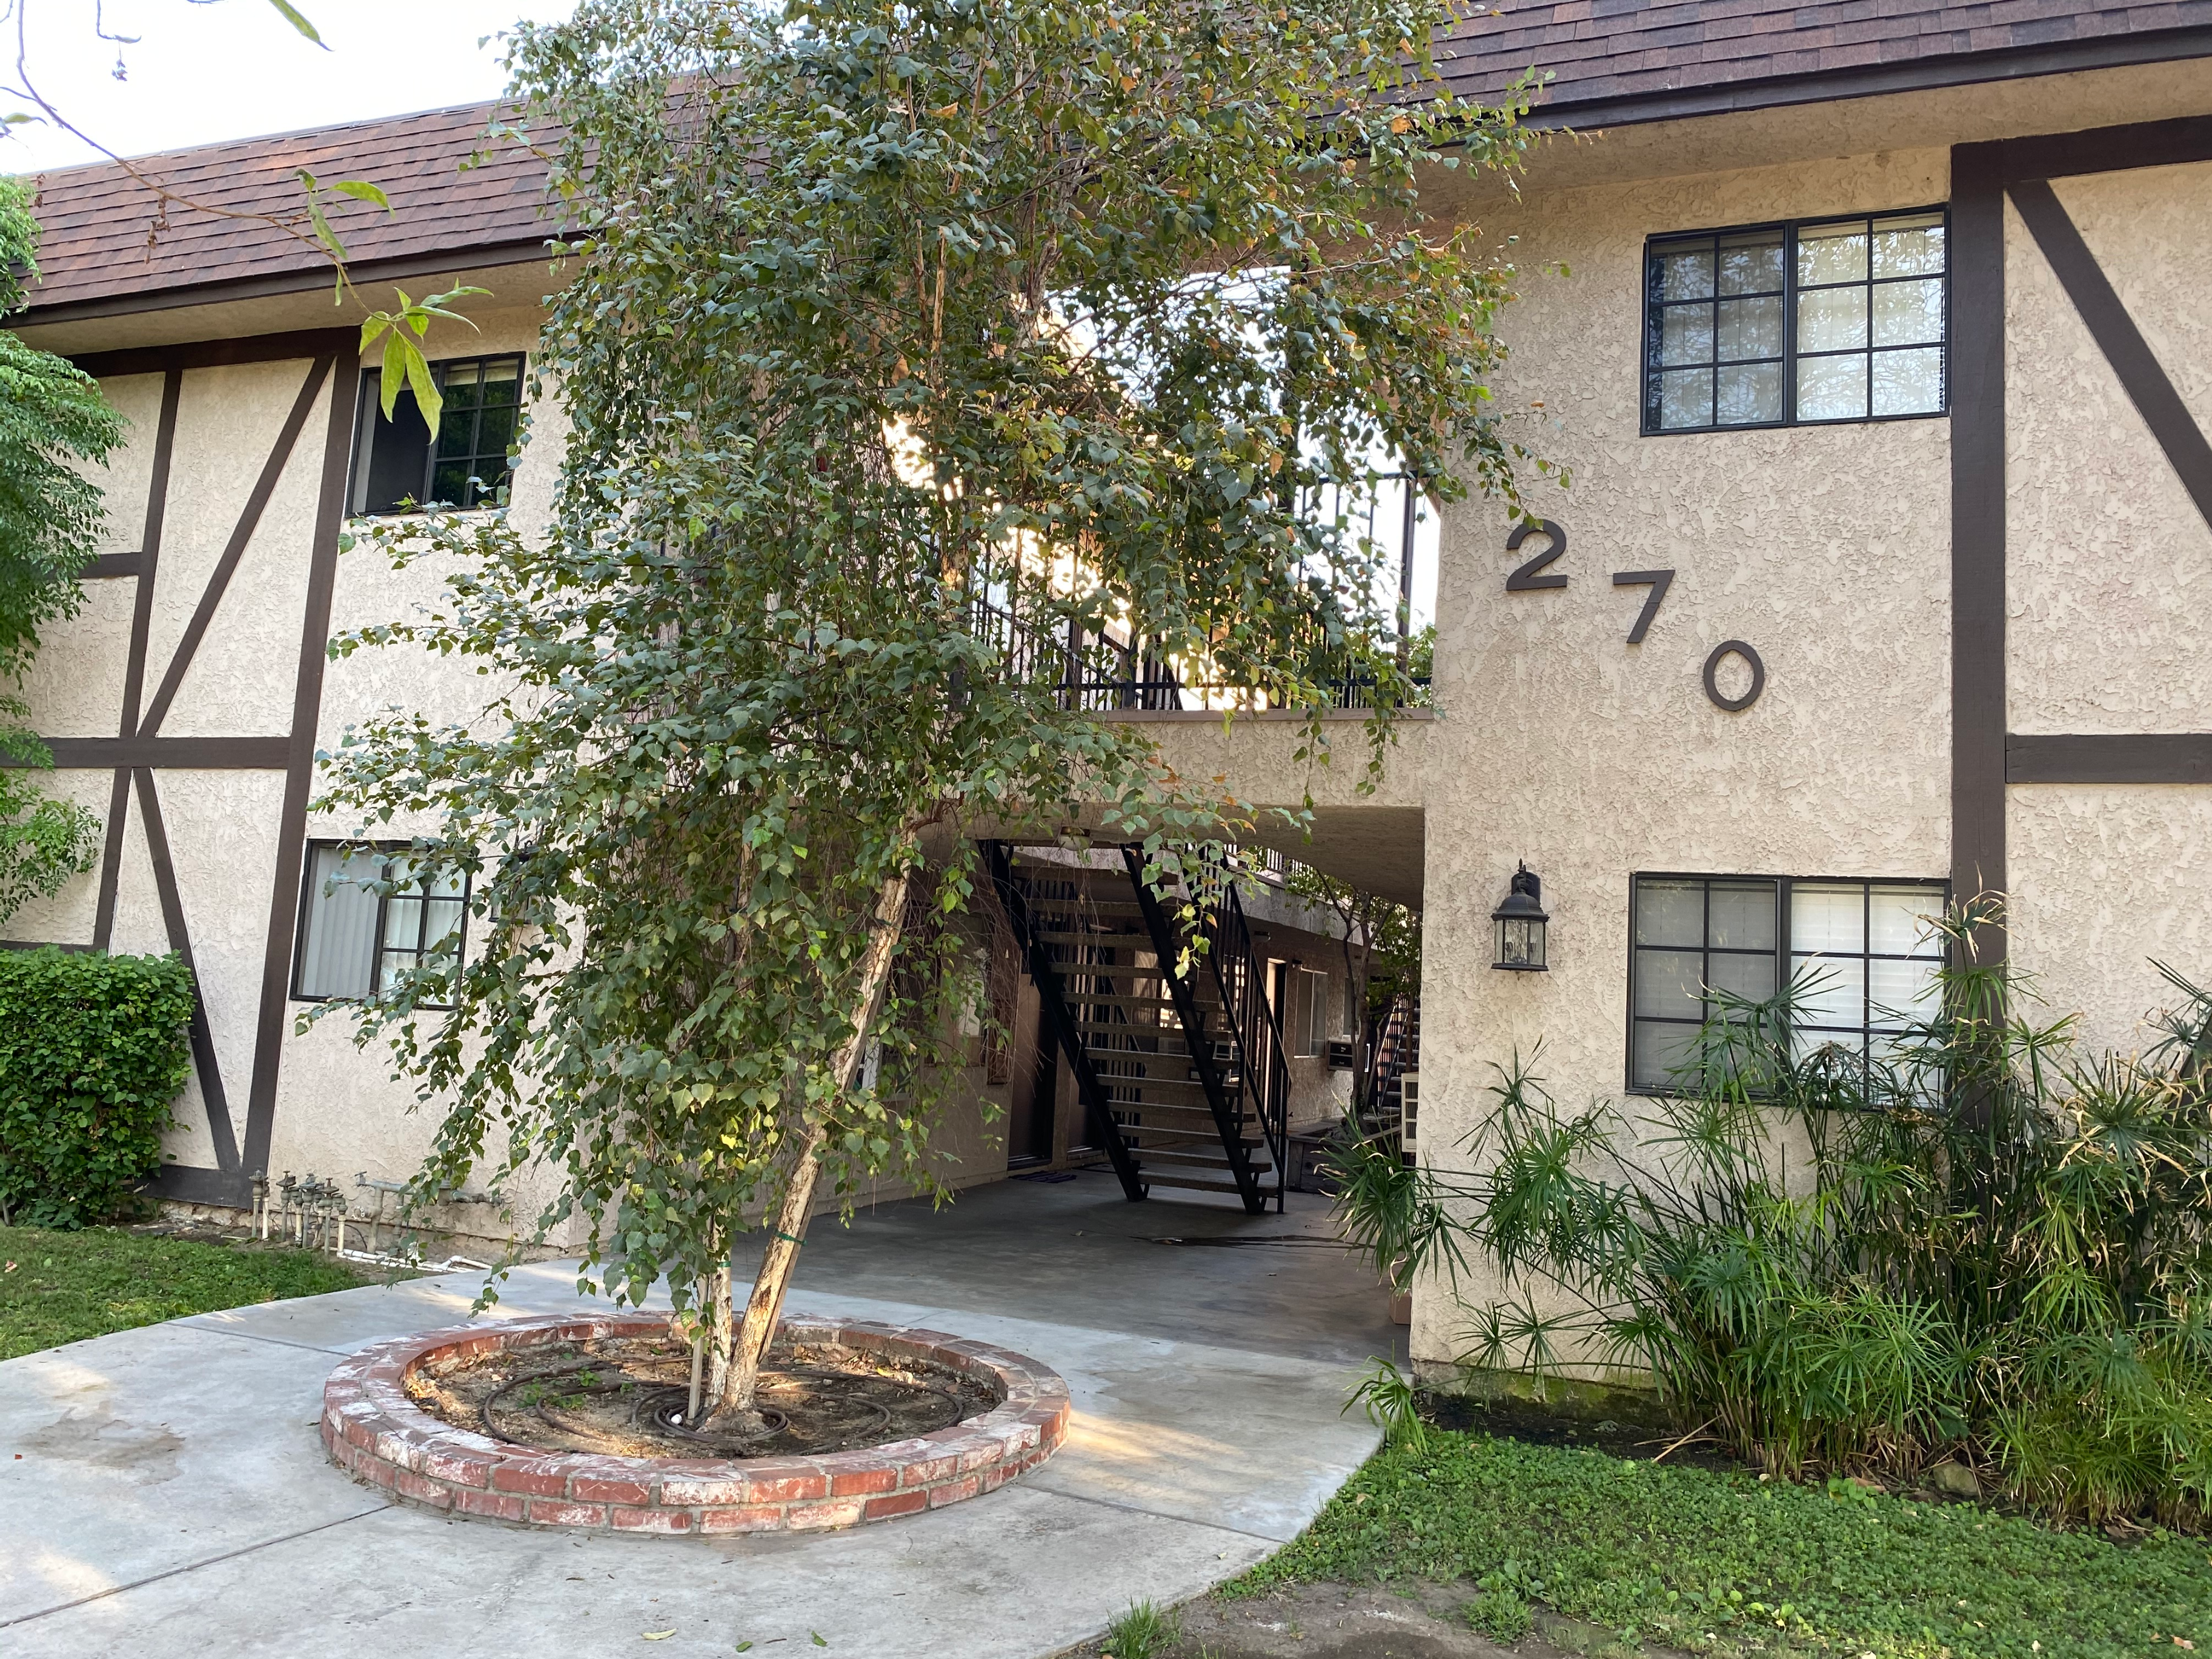 270 W. Elmwood Unit M. Burbank CA 91502